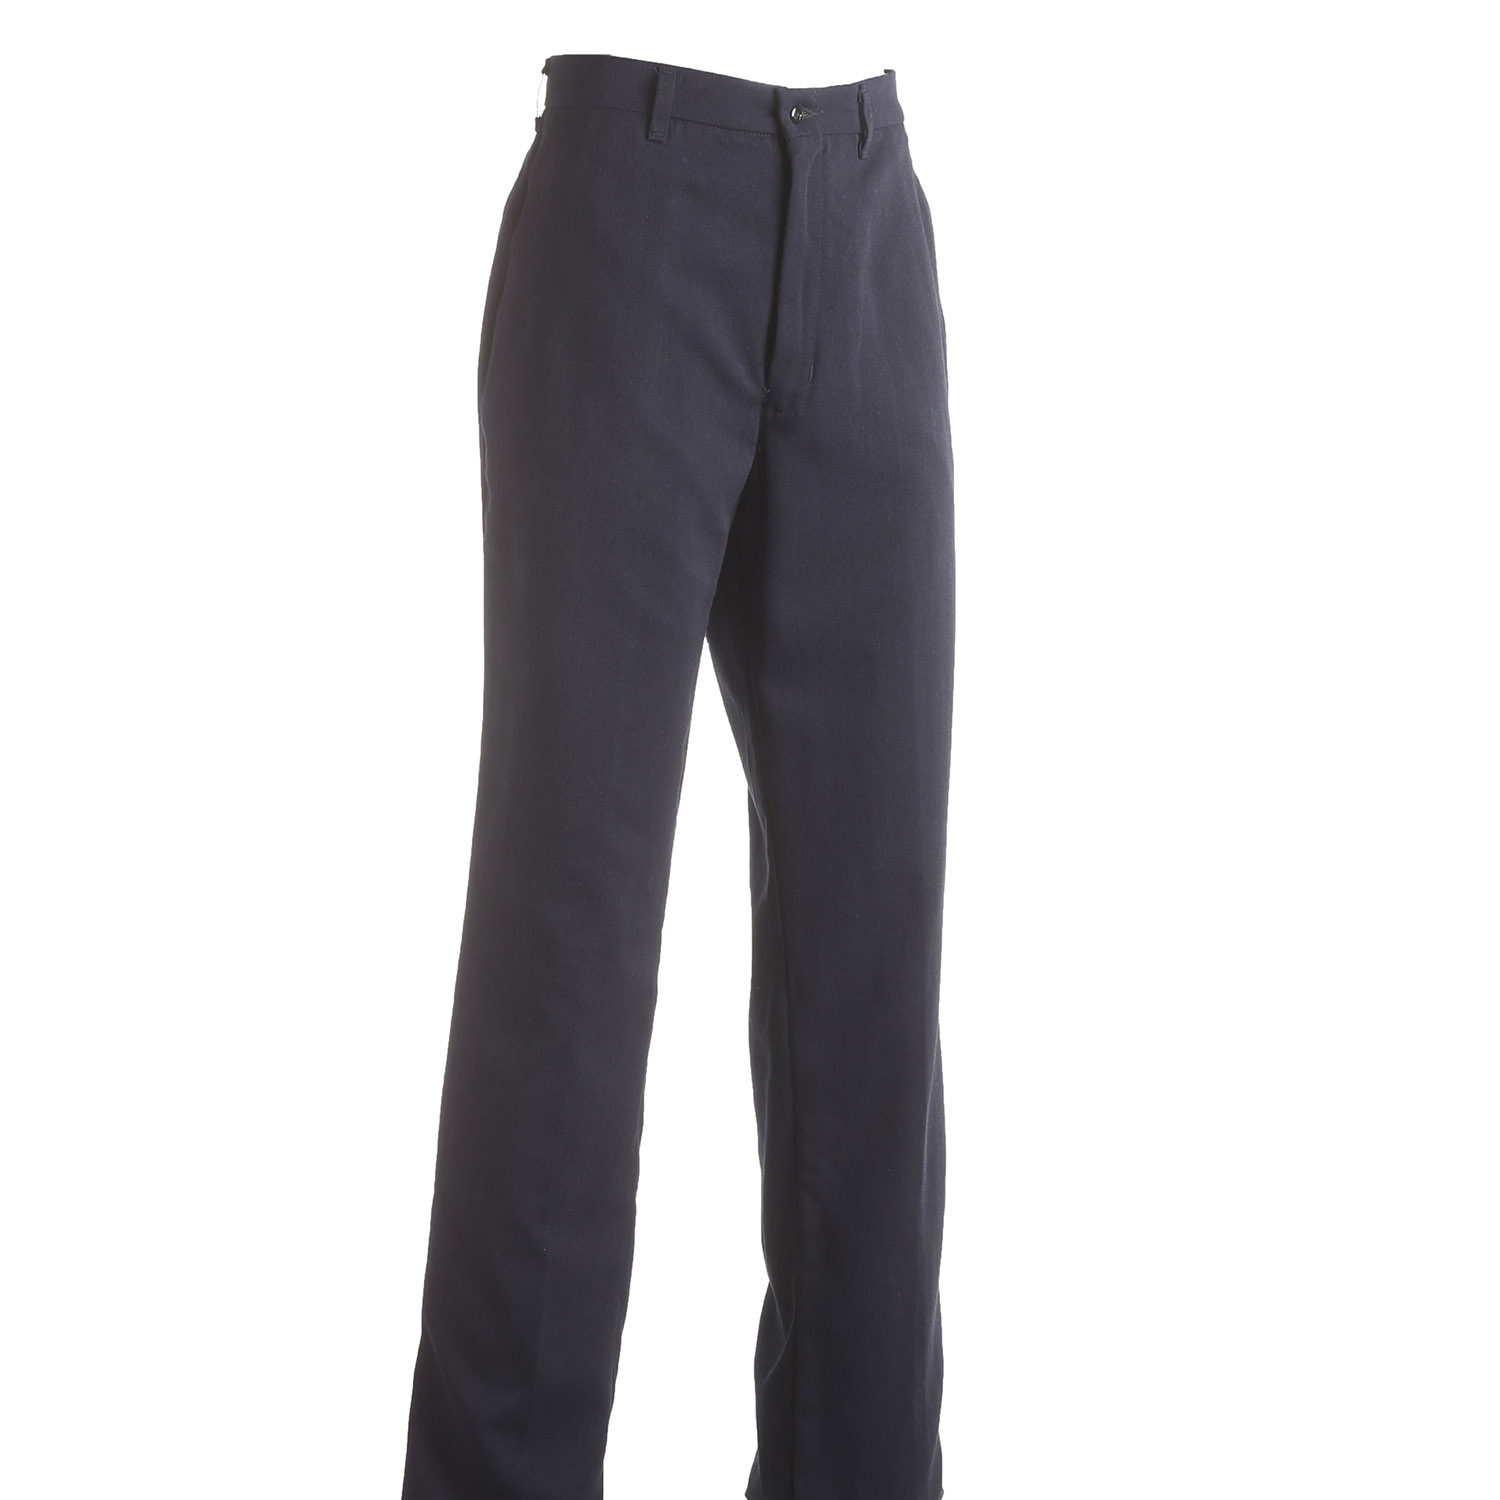 Bulwark Men's Flame Resistant Work Pants